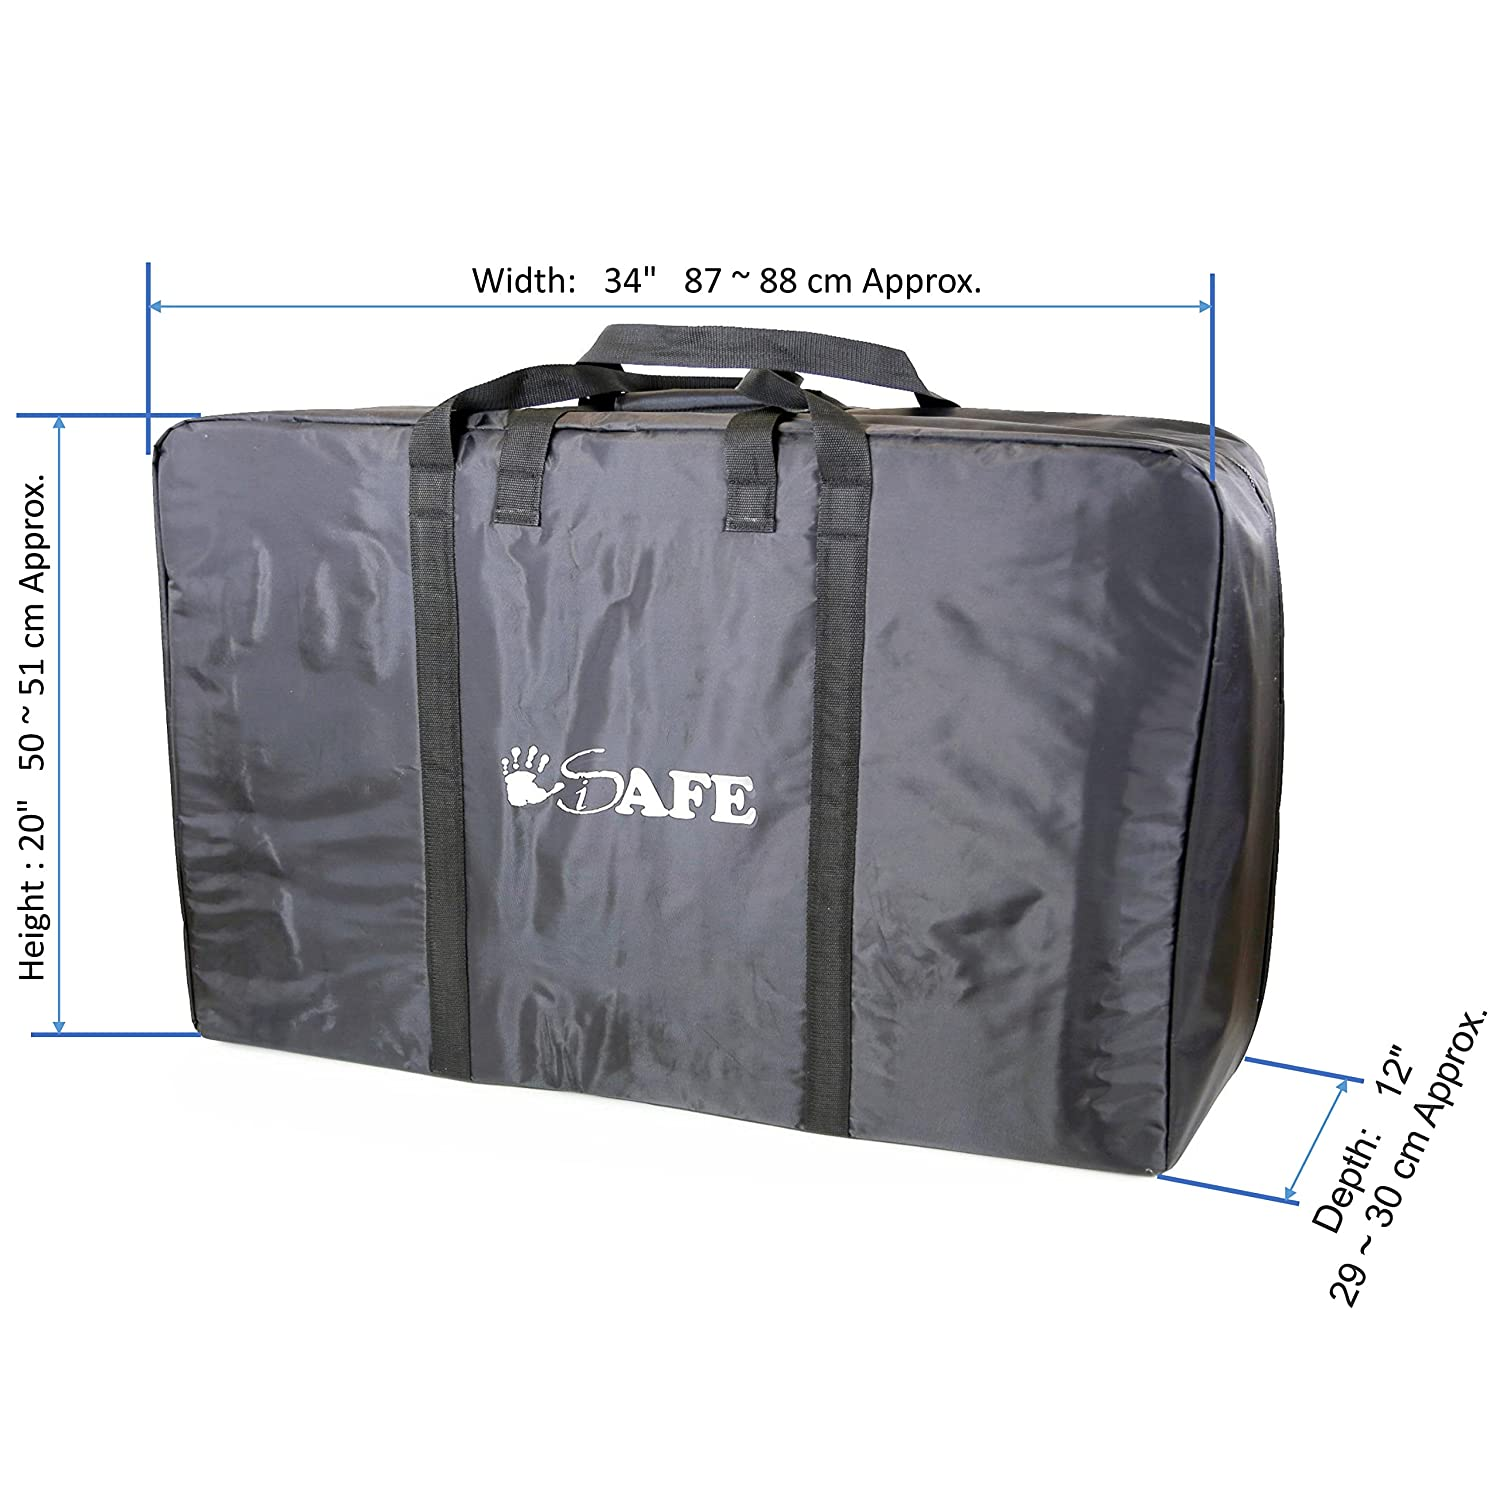 Single Baby Travel Carry Bag Luggage Heavy Duty Design To Fit Jogger Citi Mini Micro Buggy Tote Amazoncouk